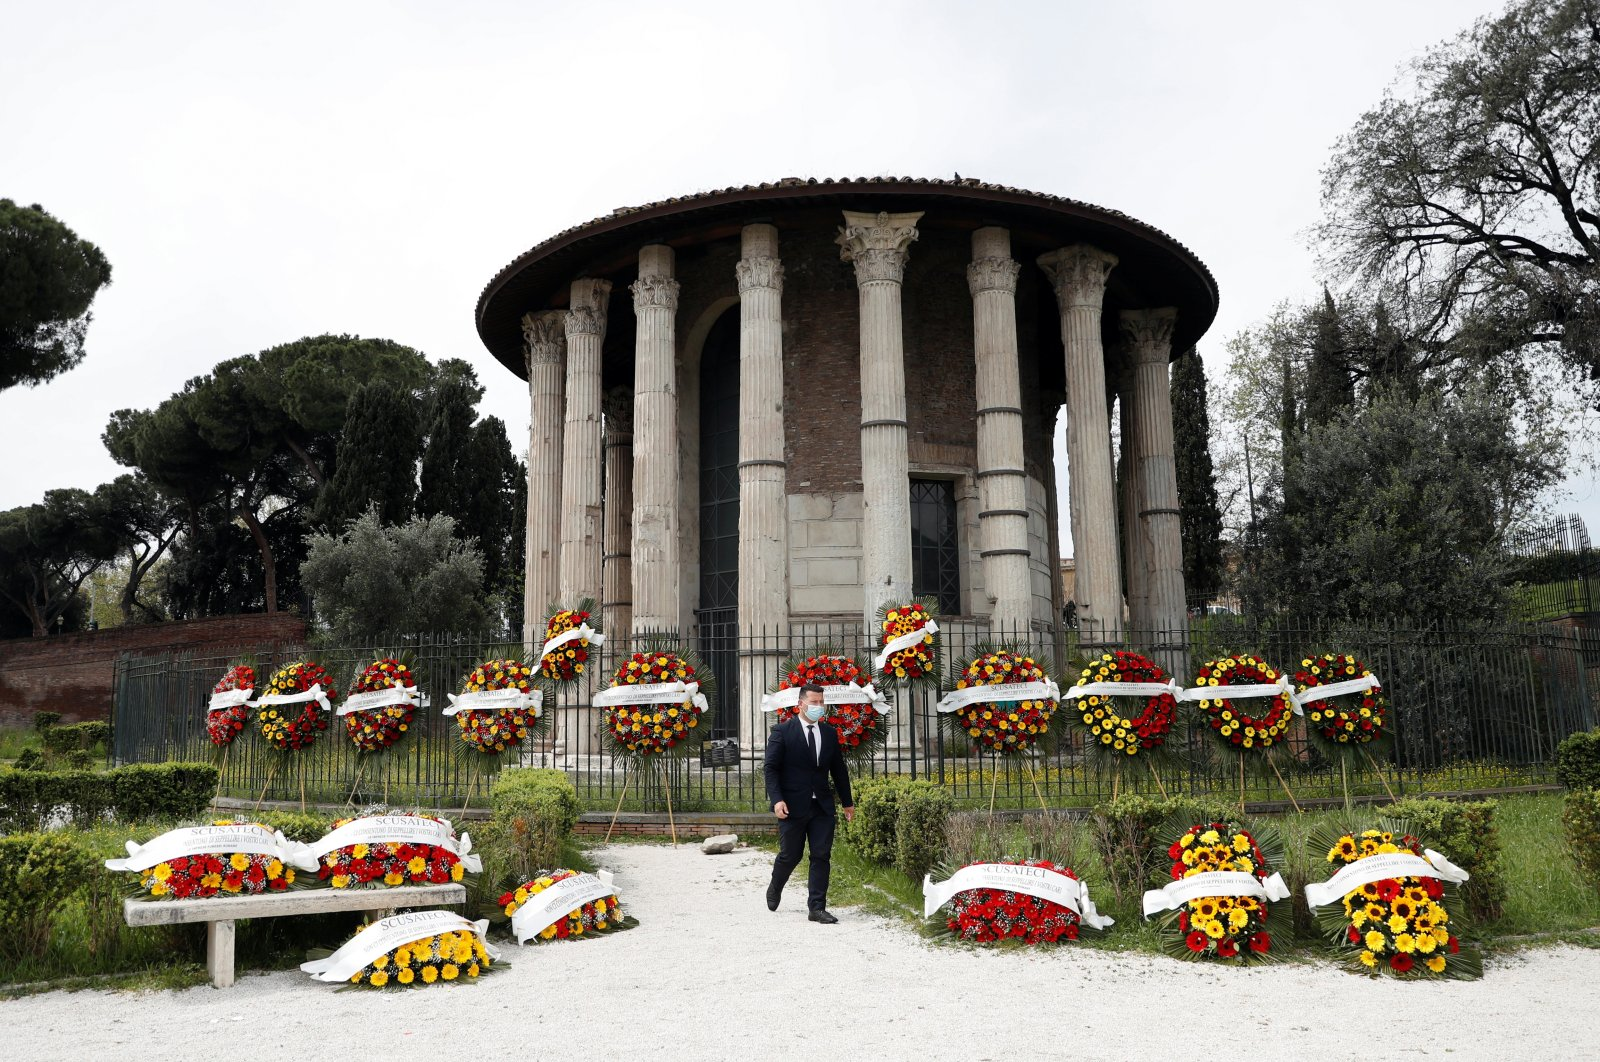 """A man walks past funeral wreaths with the words """"Sorry, but they don't allow us to bury your loved ones"""" written across them laid out by funeral workers in Rome, Italy, April 16, 2021. (Reuters Photo)"""